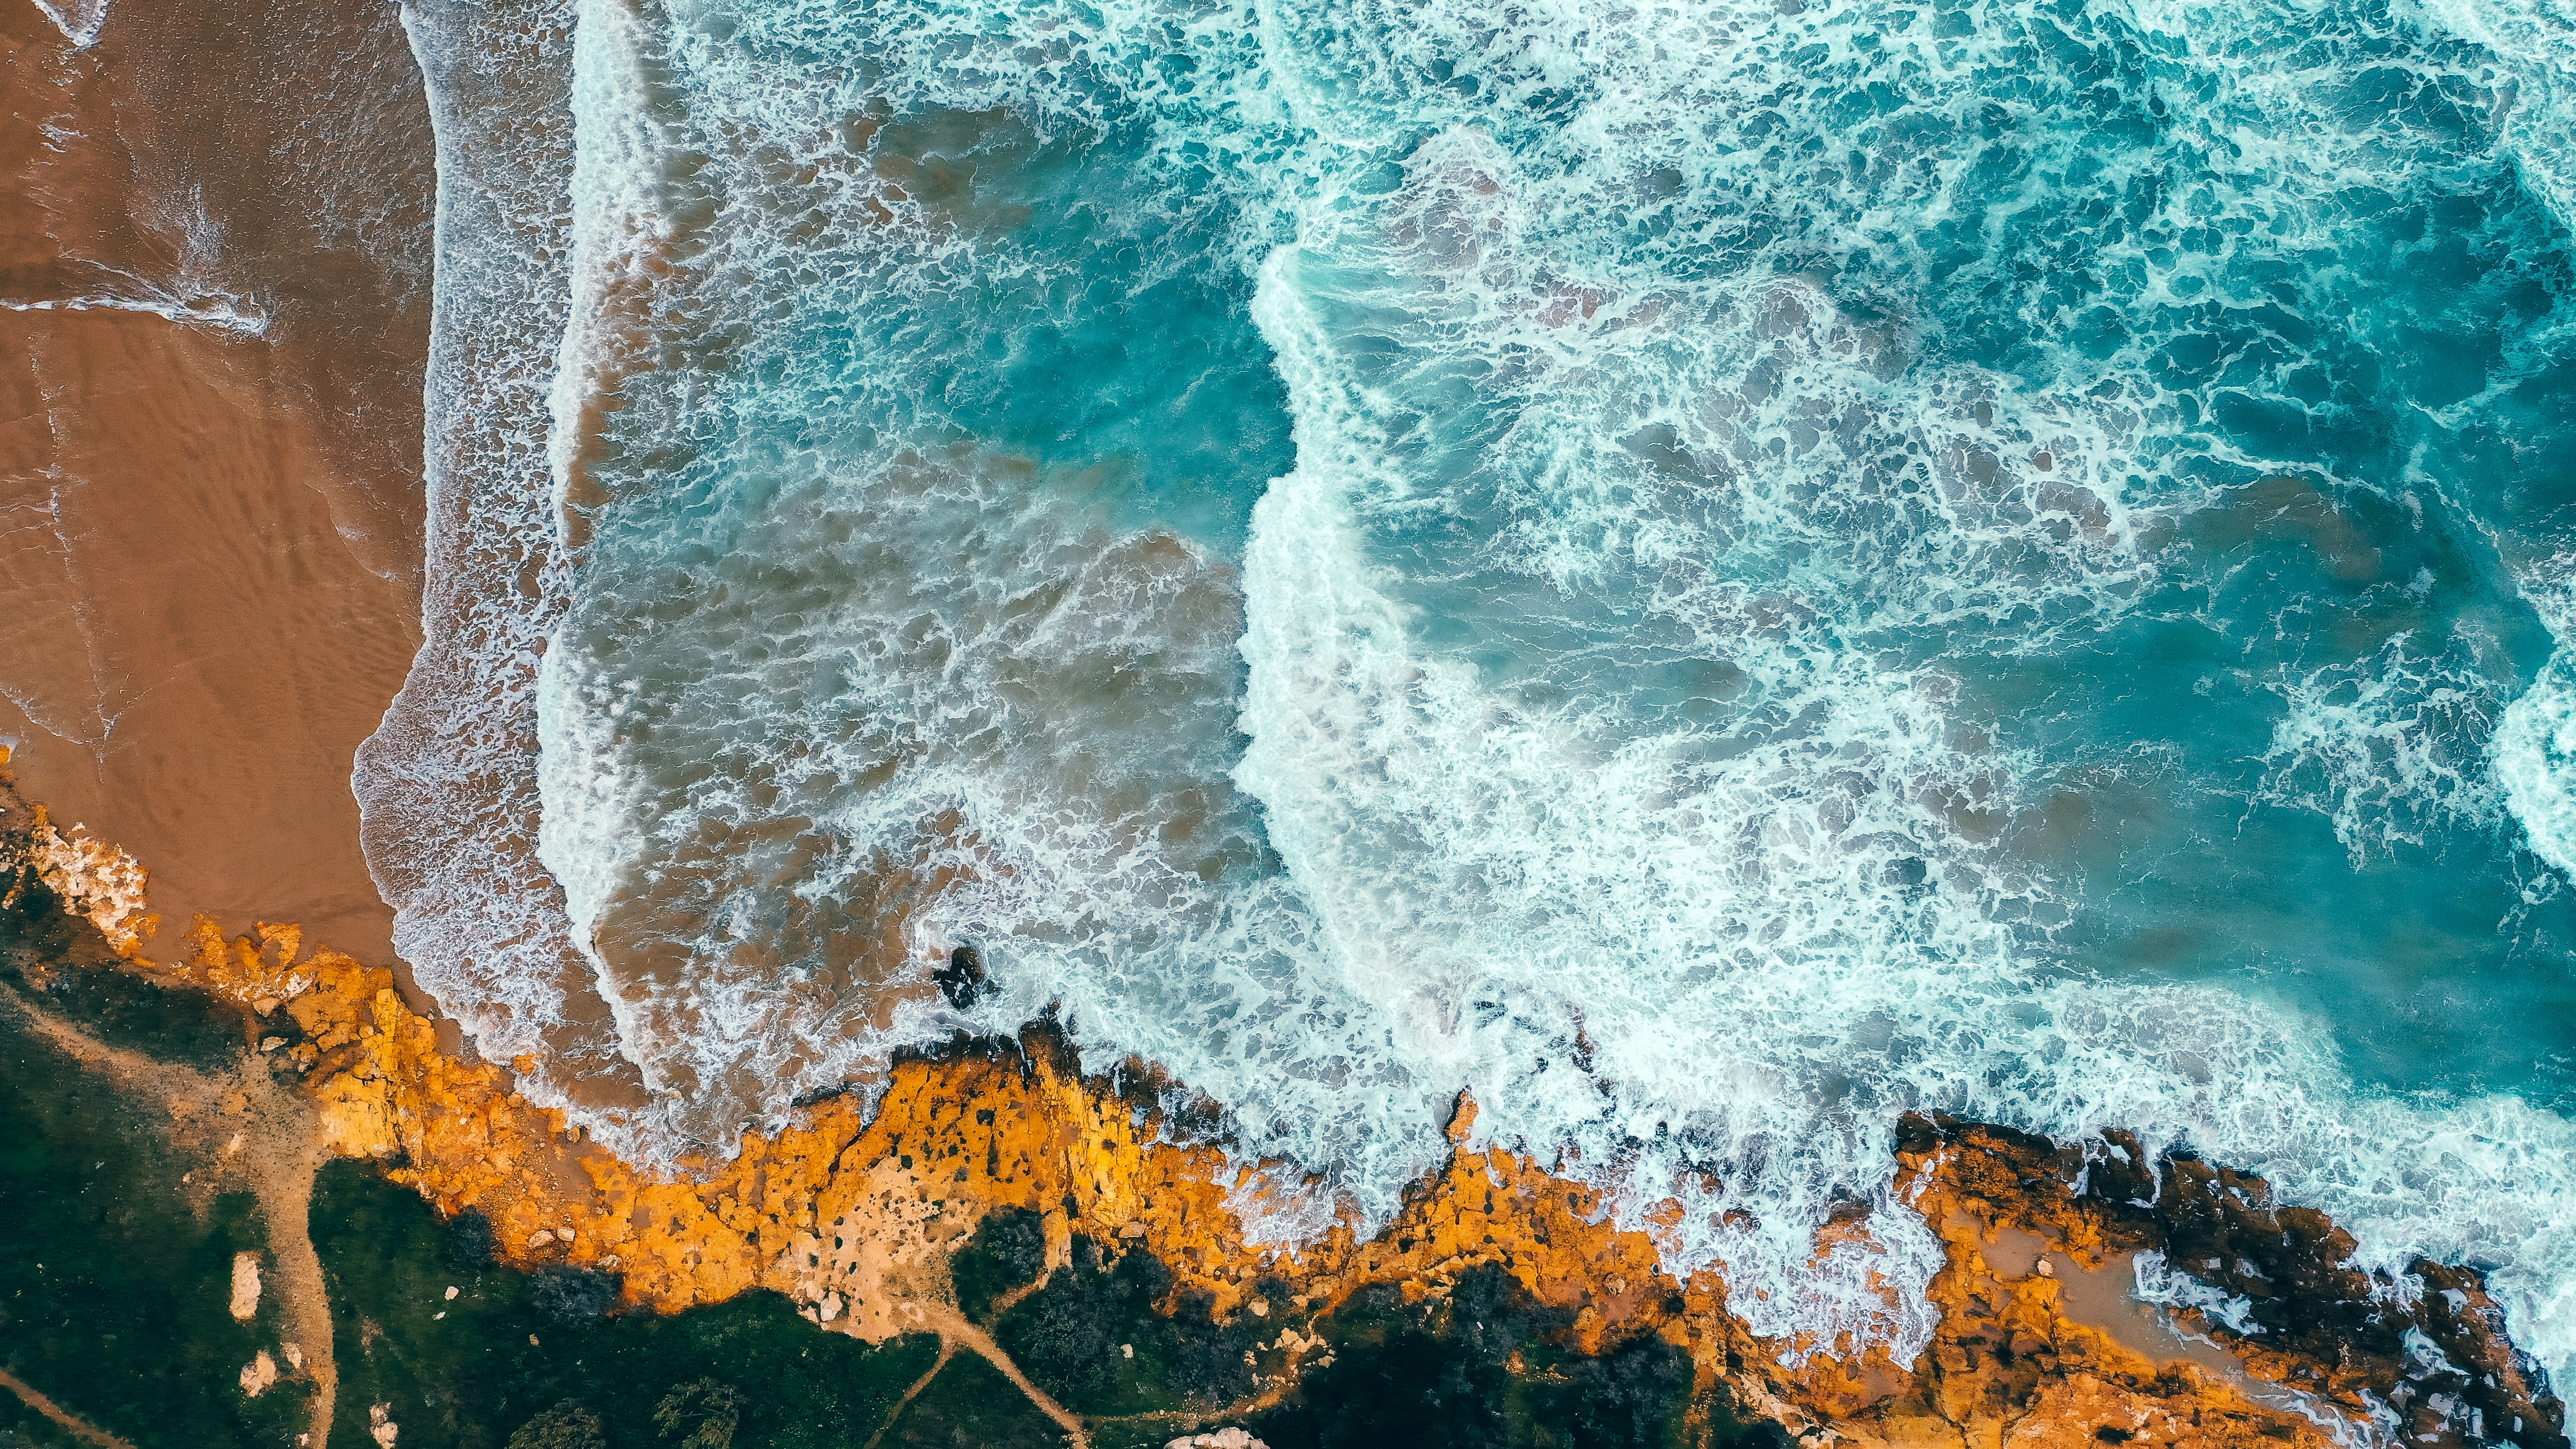 A bird's eye view of an ocean and shore